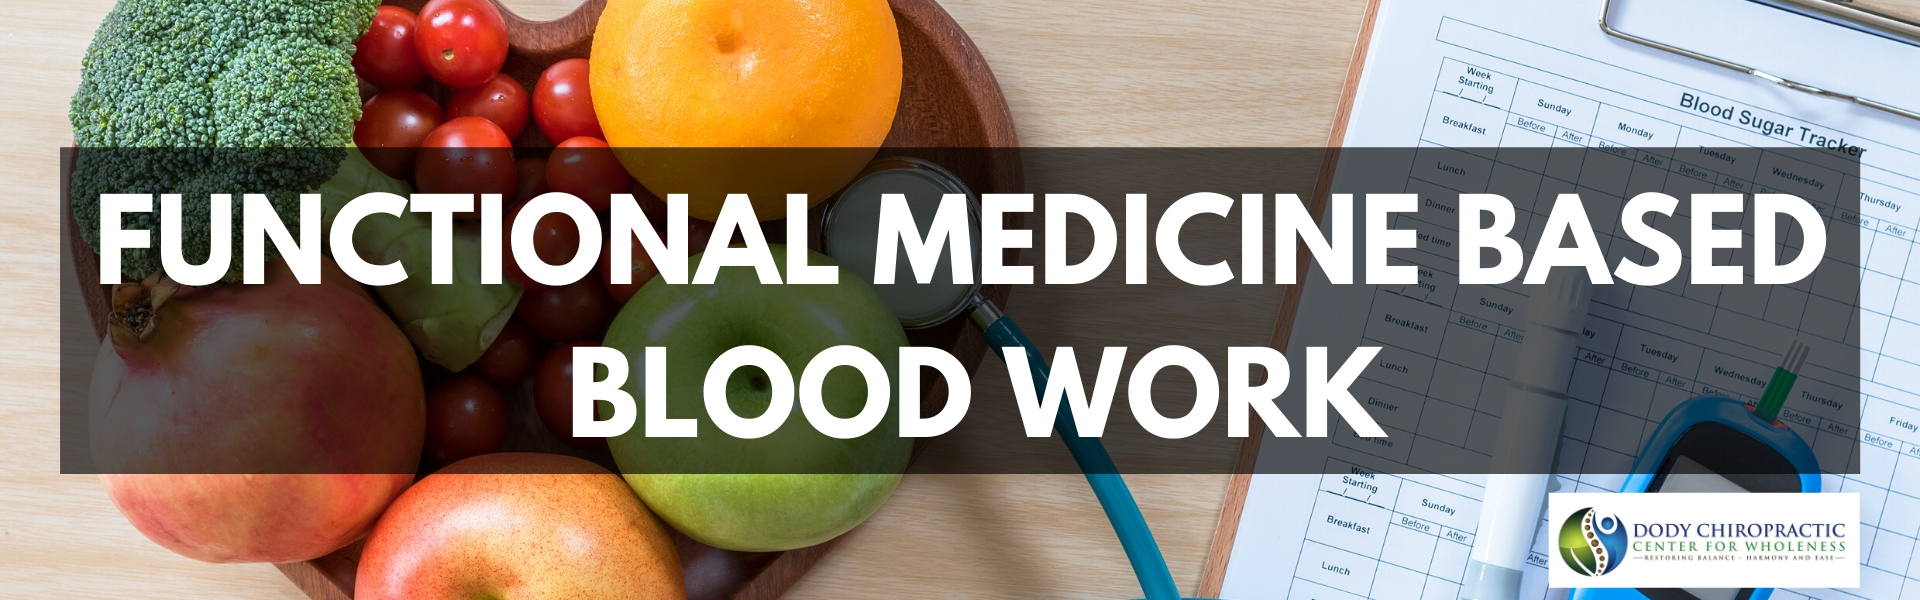 functional medicine nutrition blood work based